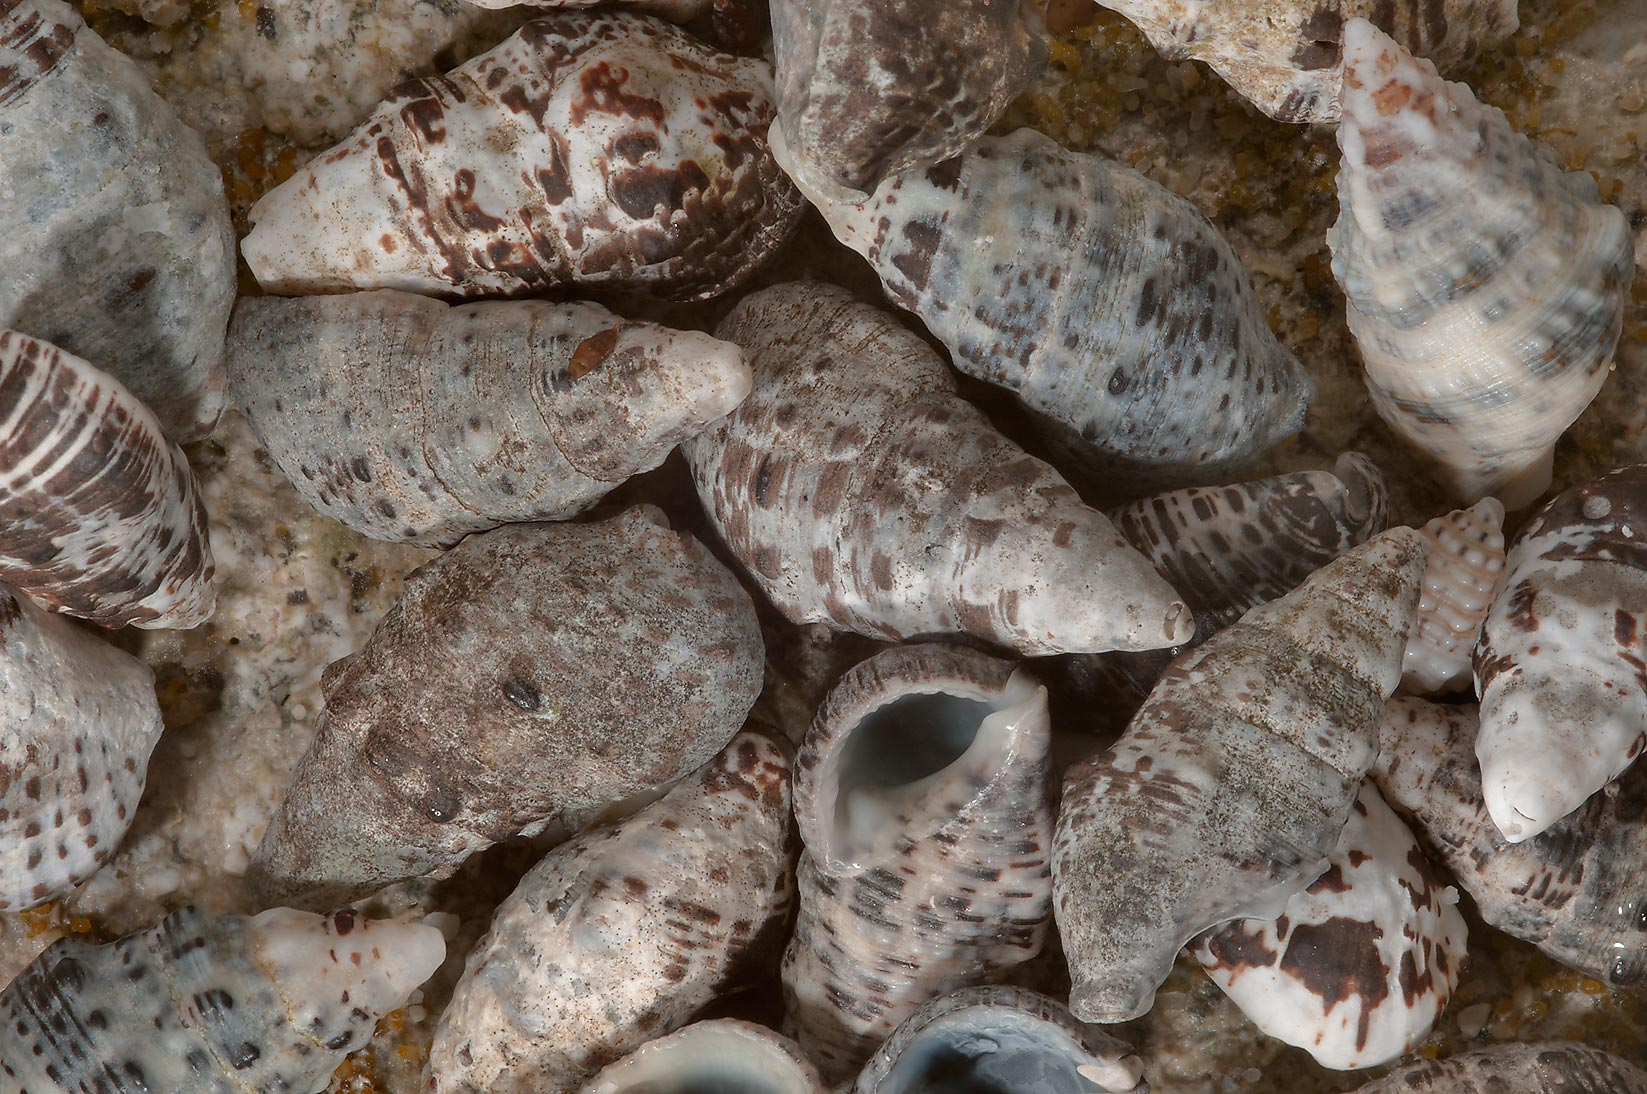 Shells of a marine gastropod mollusk (sea snail...tip of Qatar, east from Ruwais